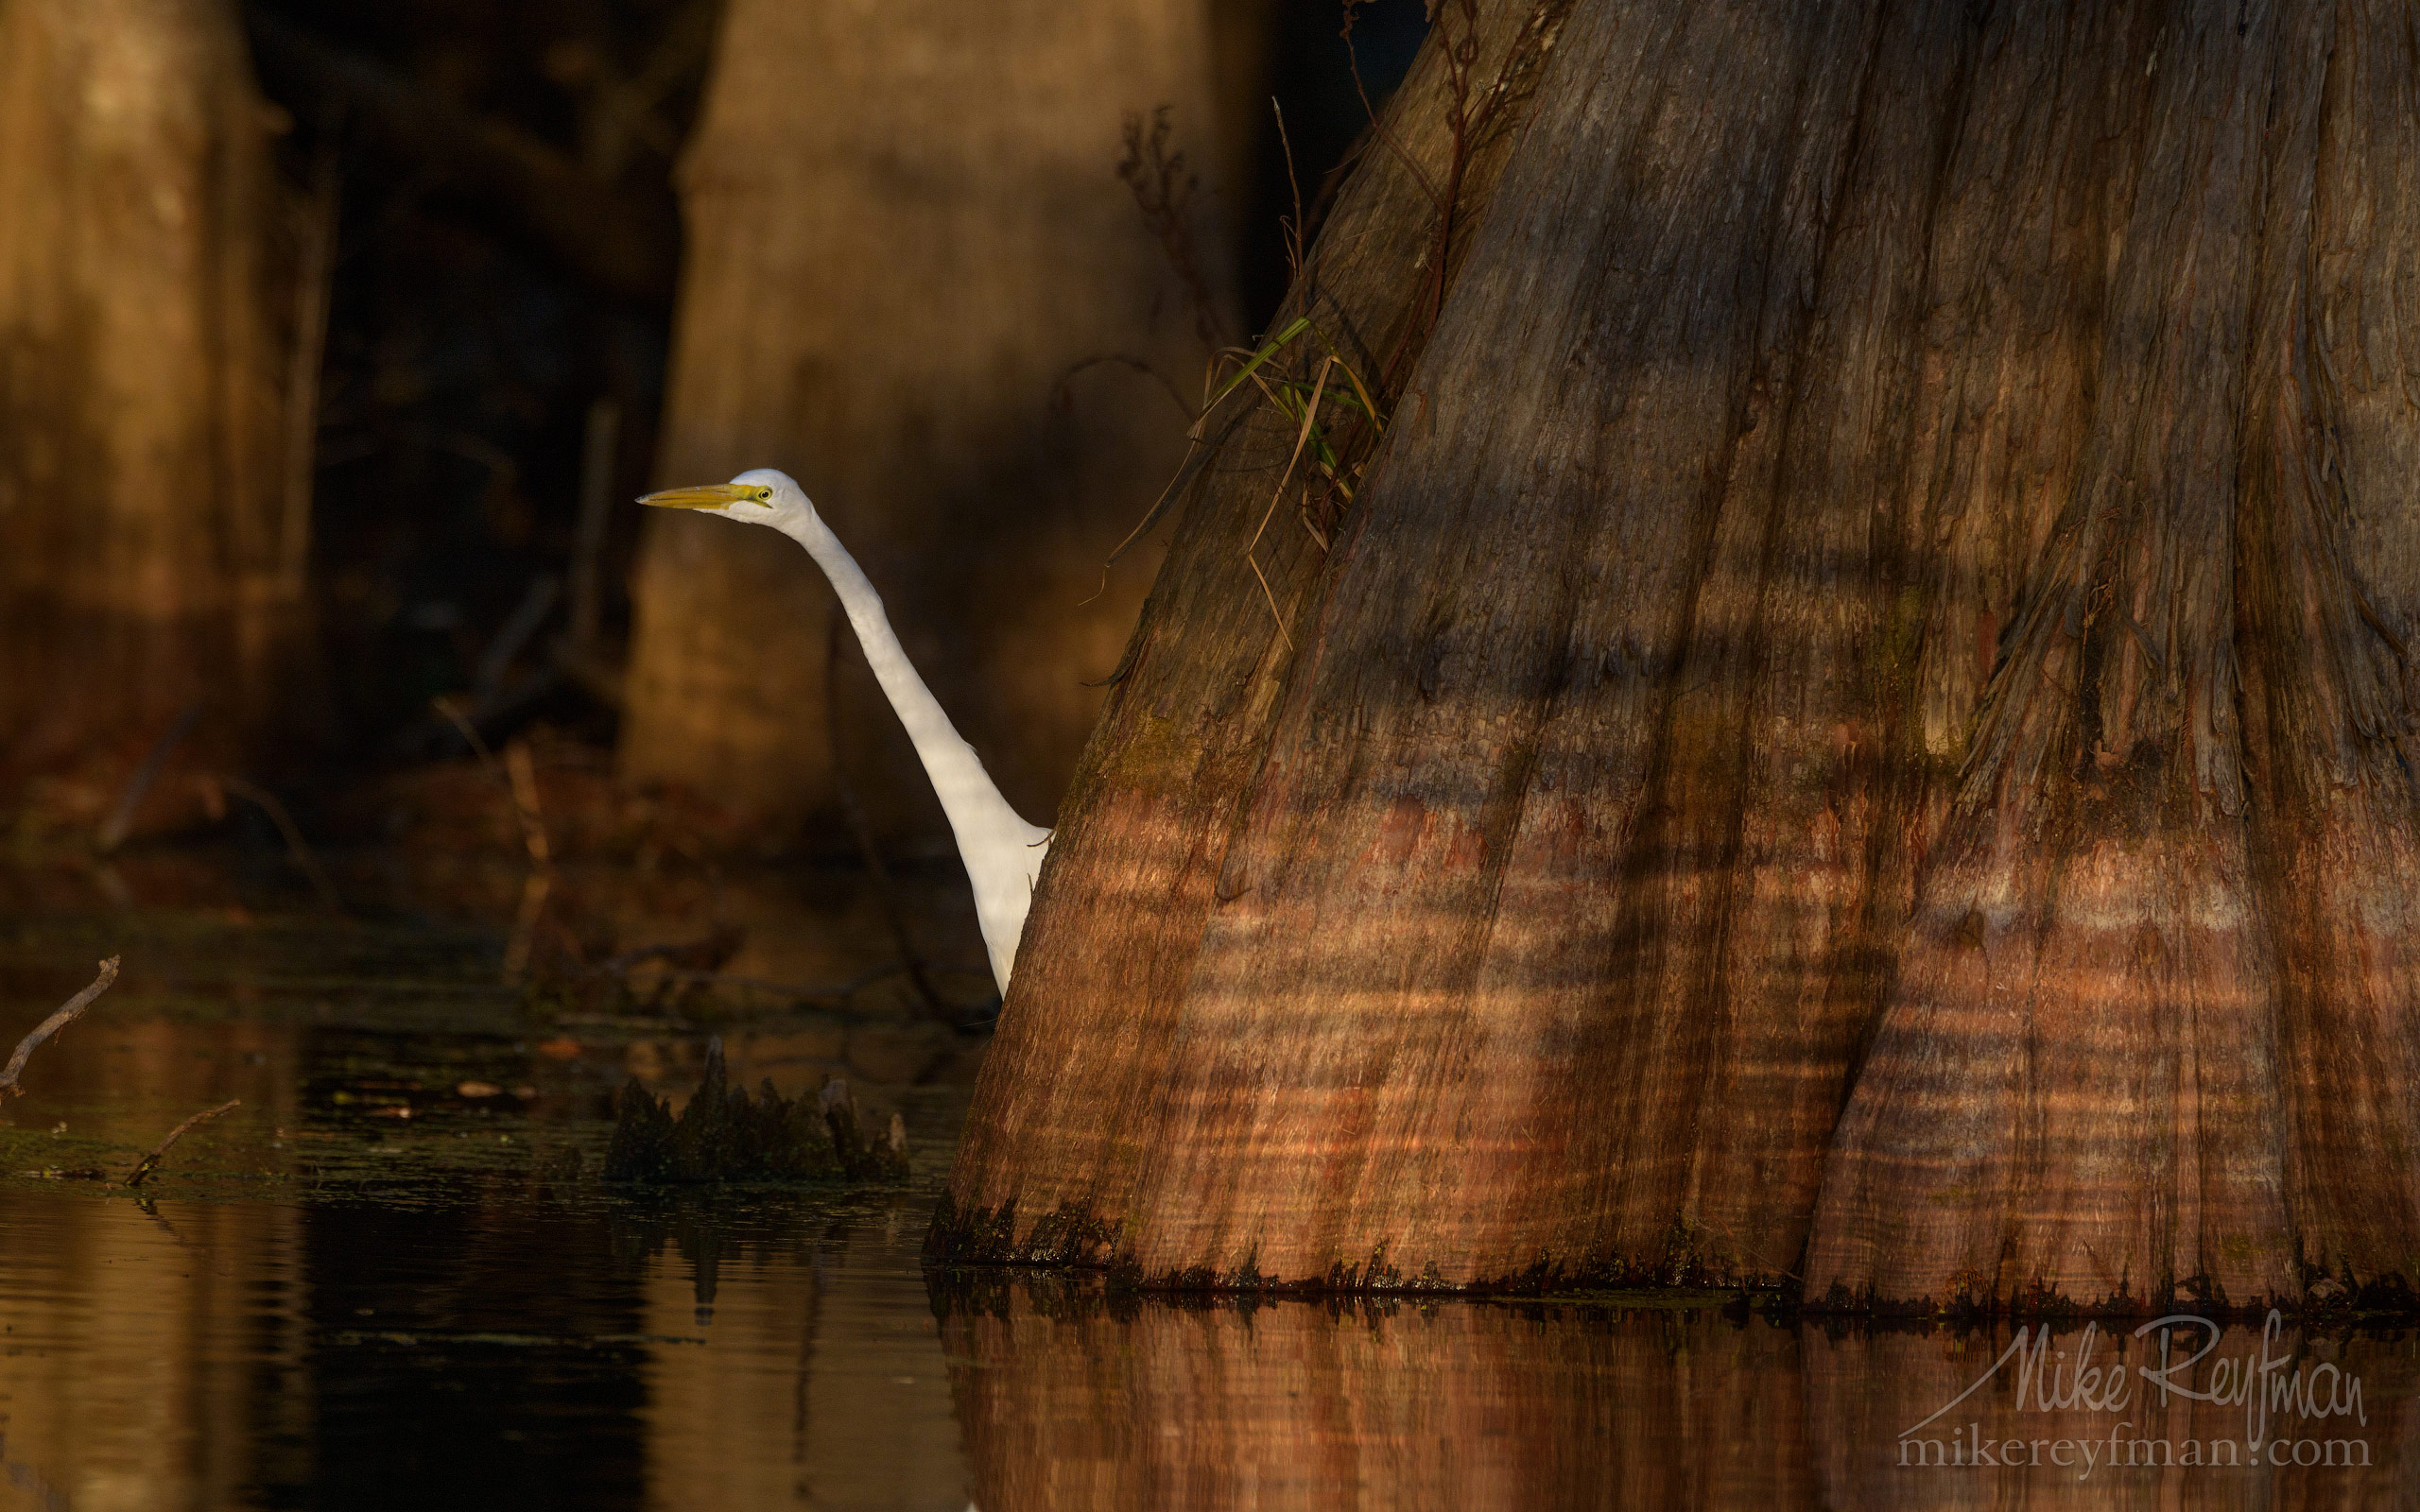 Great Egret with the buttressed trunks of Bald Cypress and Tupelo trees in the background. Lake Martin, Louisiana, US 068-LT1-50A4076.jpg - Bold Cypress and Tupelo Trees in the swamps of Atchafalaya River Basin. Caddo, Martin and Fousse Lakes. Texas/Louisiana, USA. - Mike Reyfman Photography